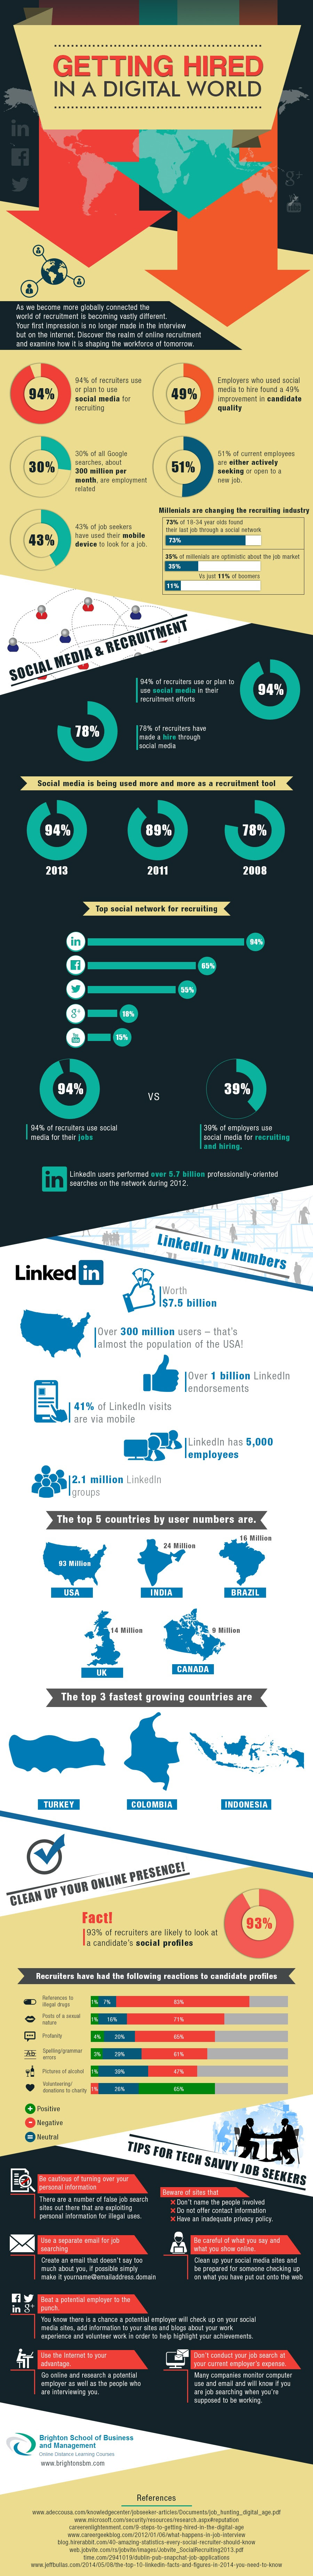 Infographic: Getting Hired in a Digital World